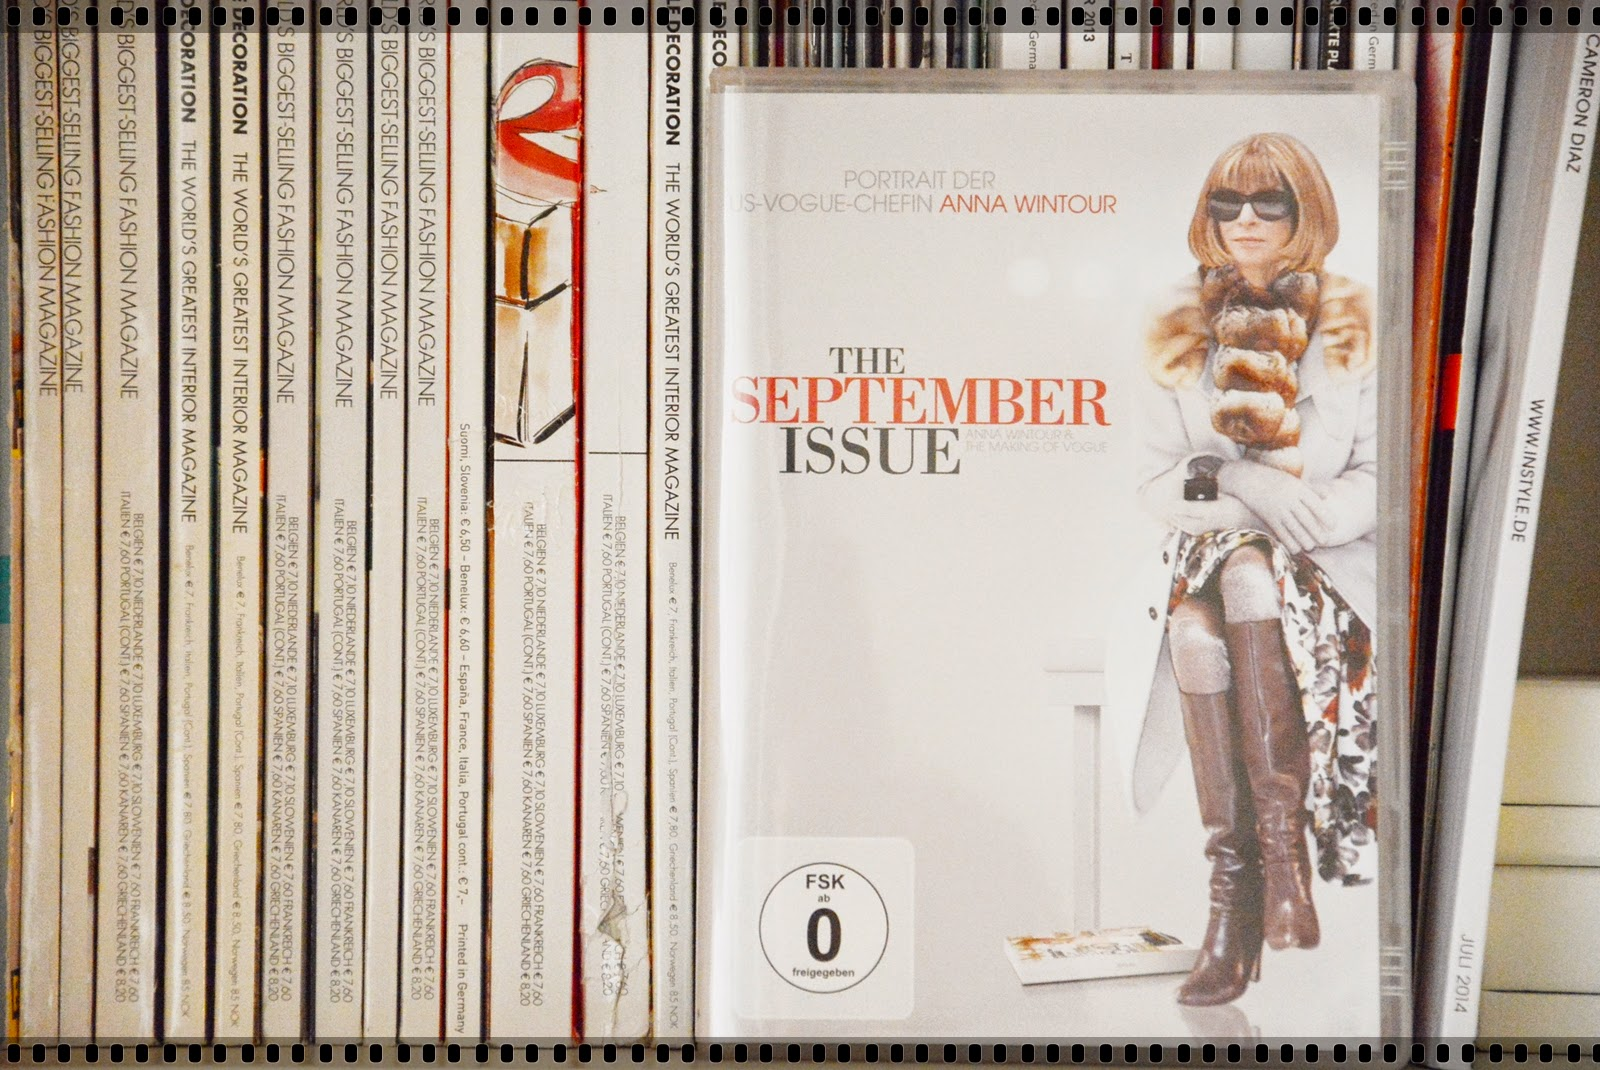 Anna Wintour, the September Issue Vogue